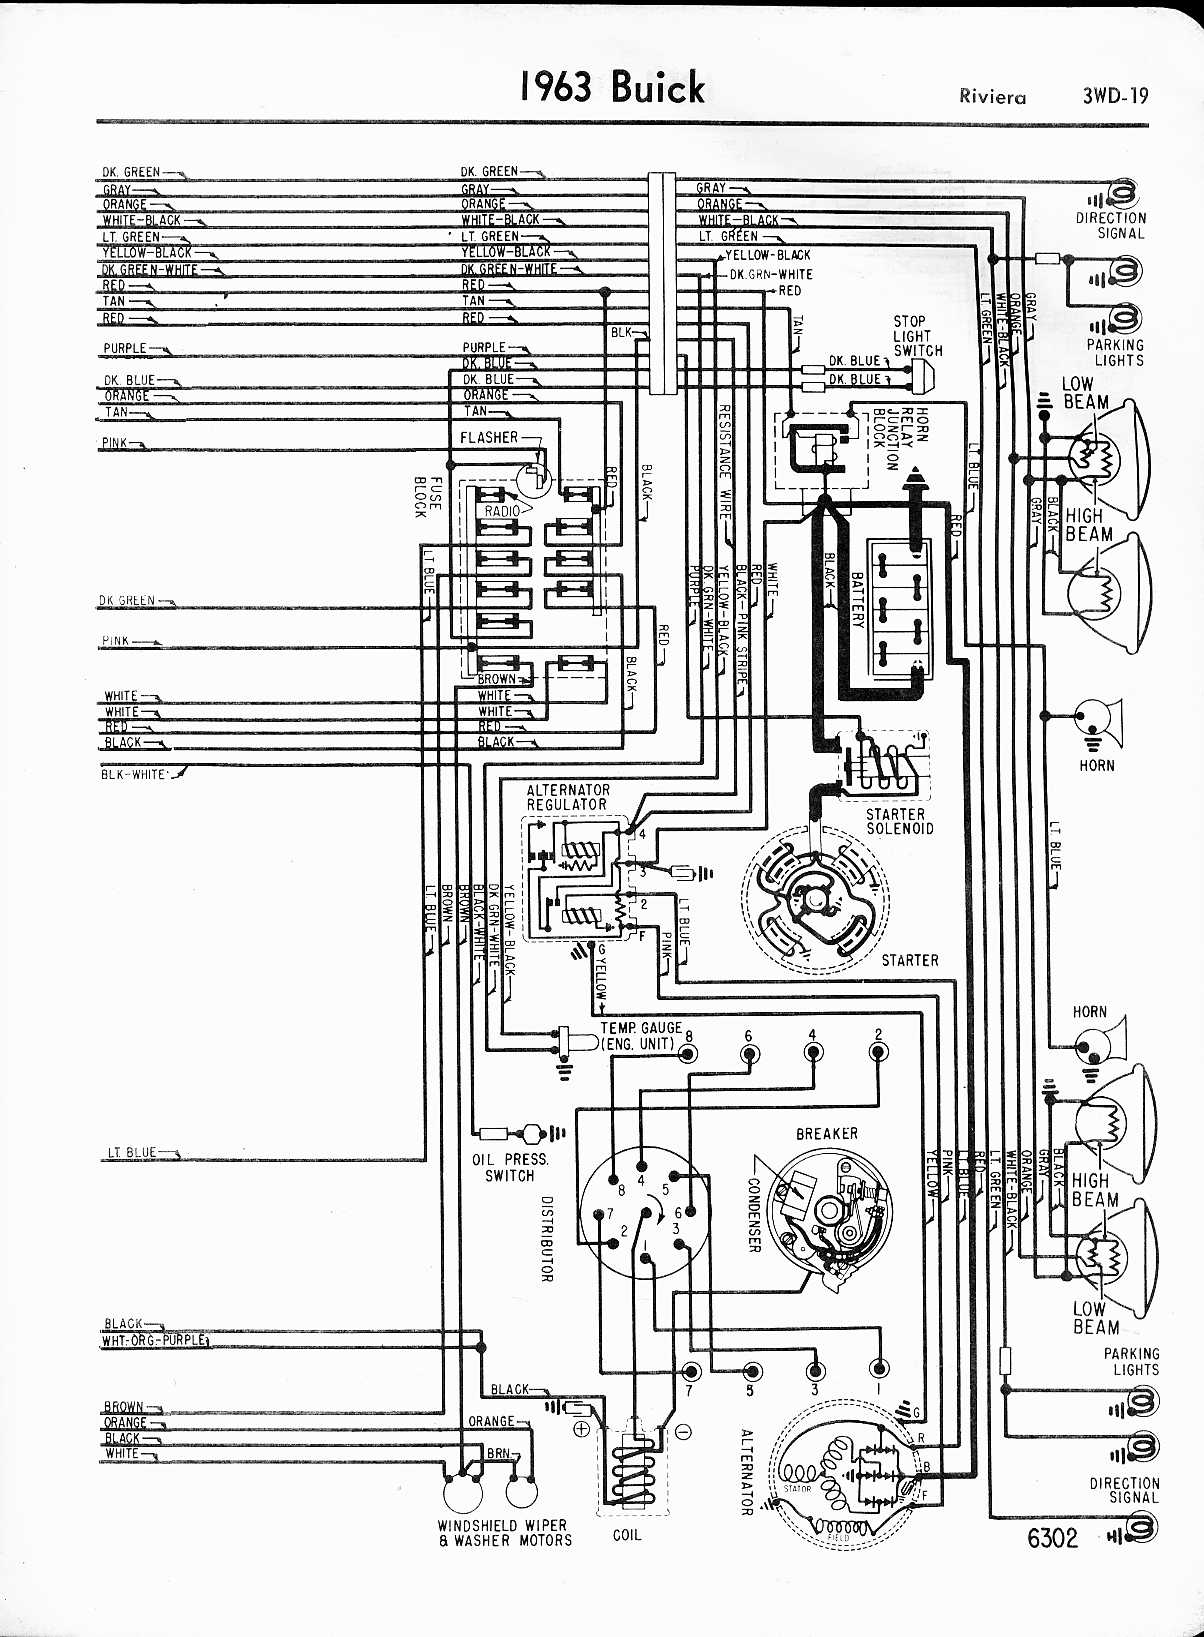 96 Buick Lesabre Fuse Diagram Wiring Library Box Regal Riviera Steering Column Diy Enthusiasts 1997 1985